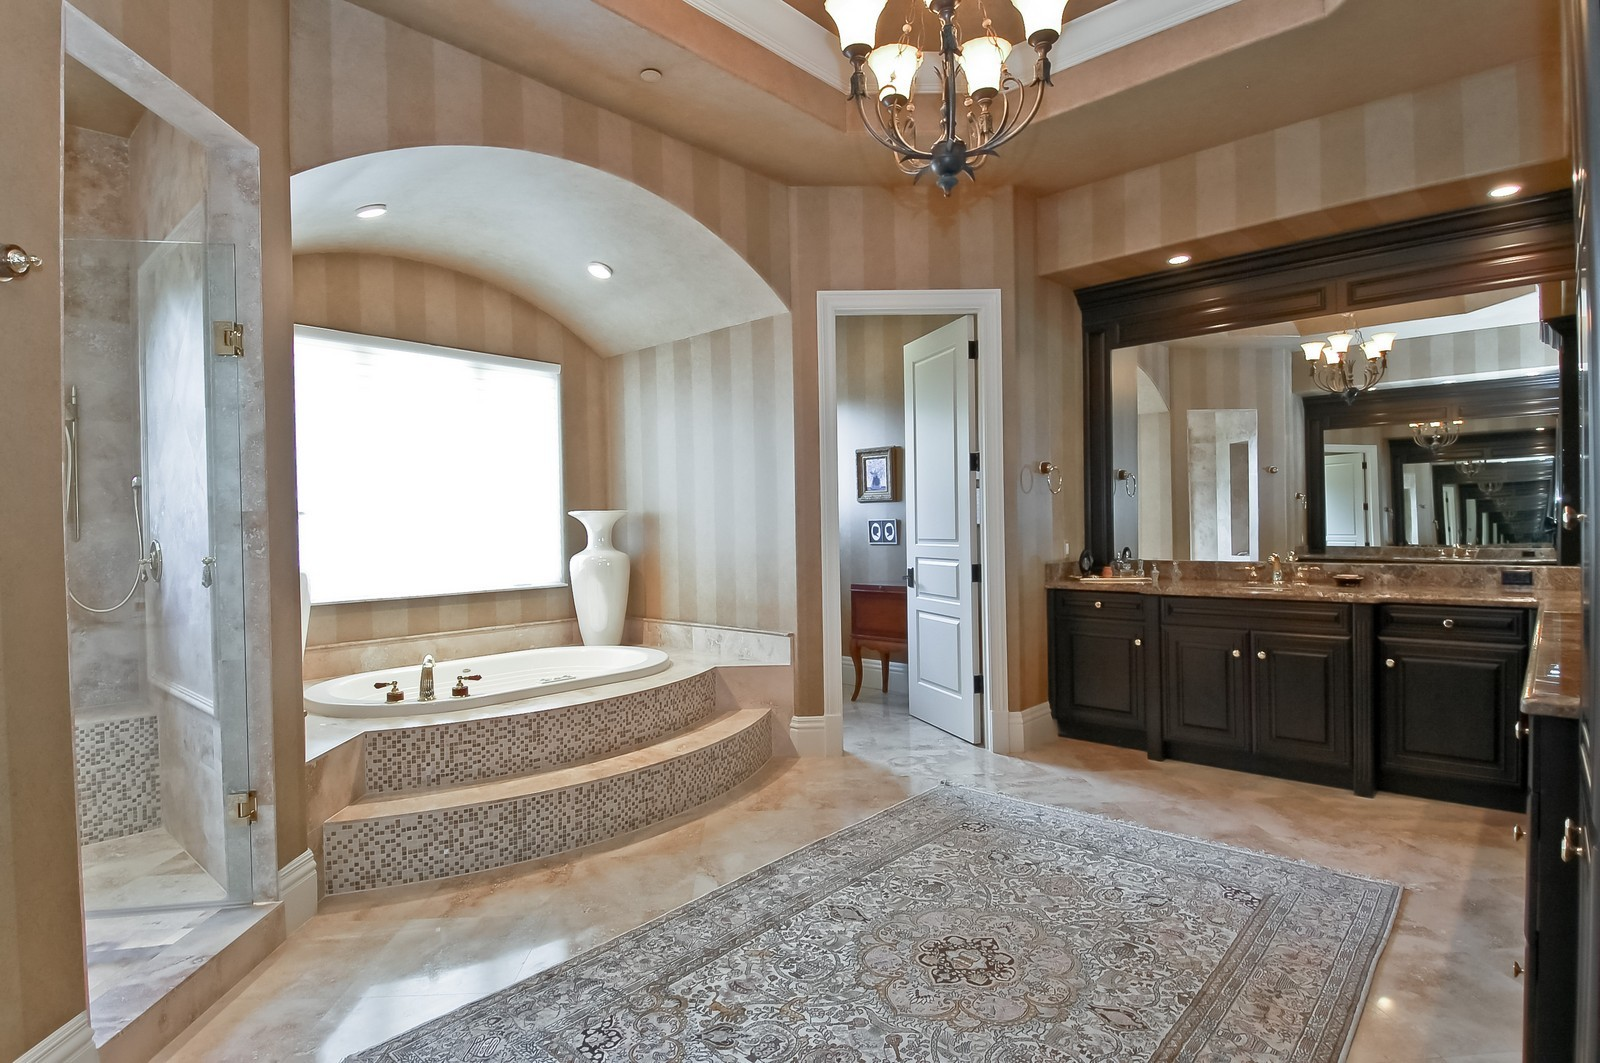 Real Estate Photography - 4022 S Ocean Blvd, Highland Beach, FL, 33487 - Master Bathroom